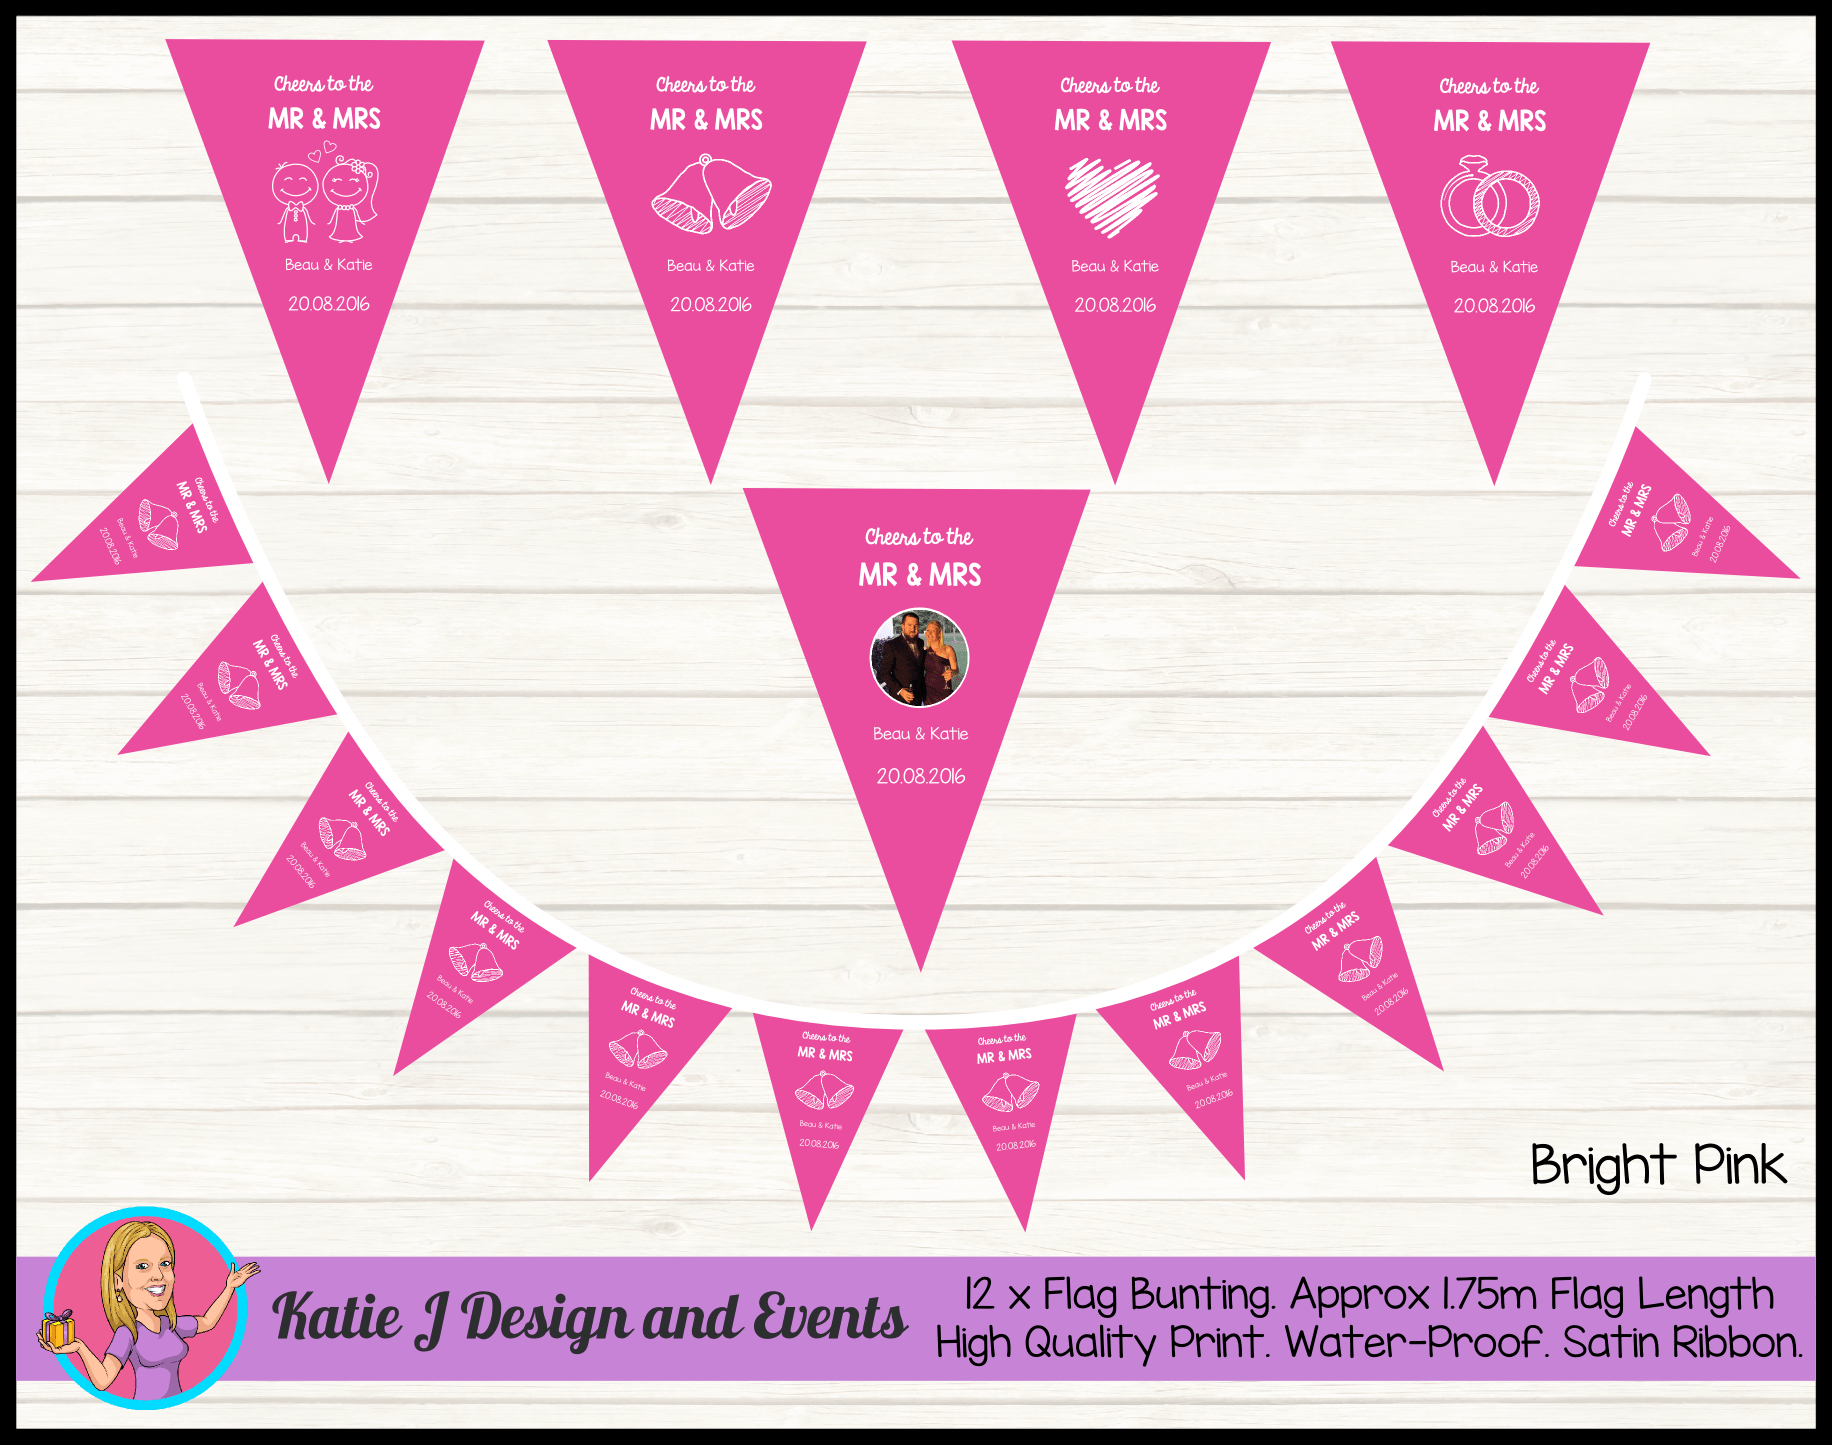 Personalised Pink 'Cheers to the Mr & Mrs' Wedding Banners Bunting Decor